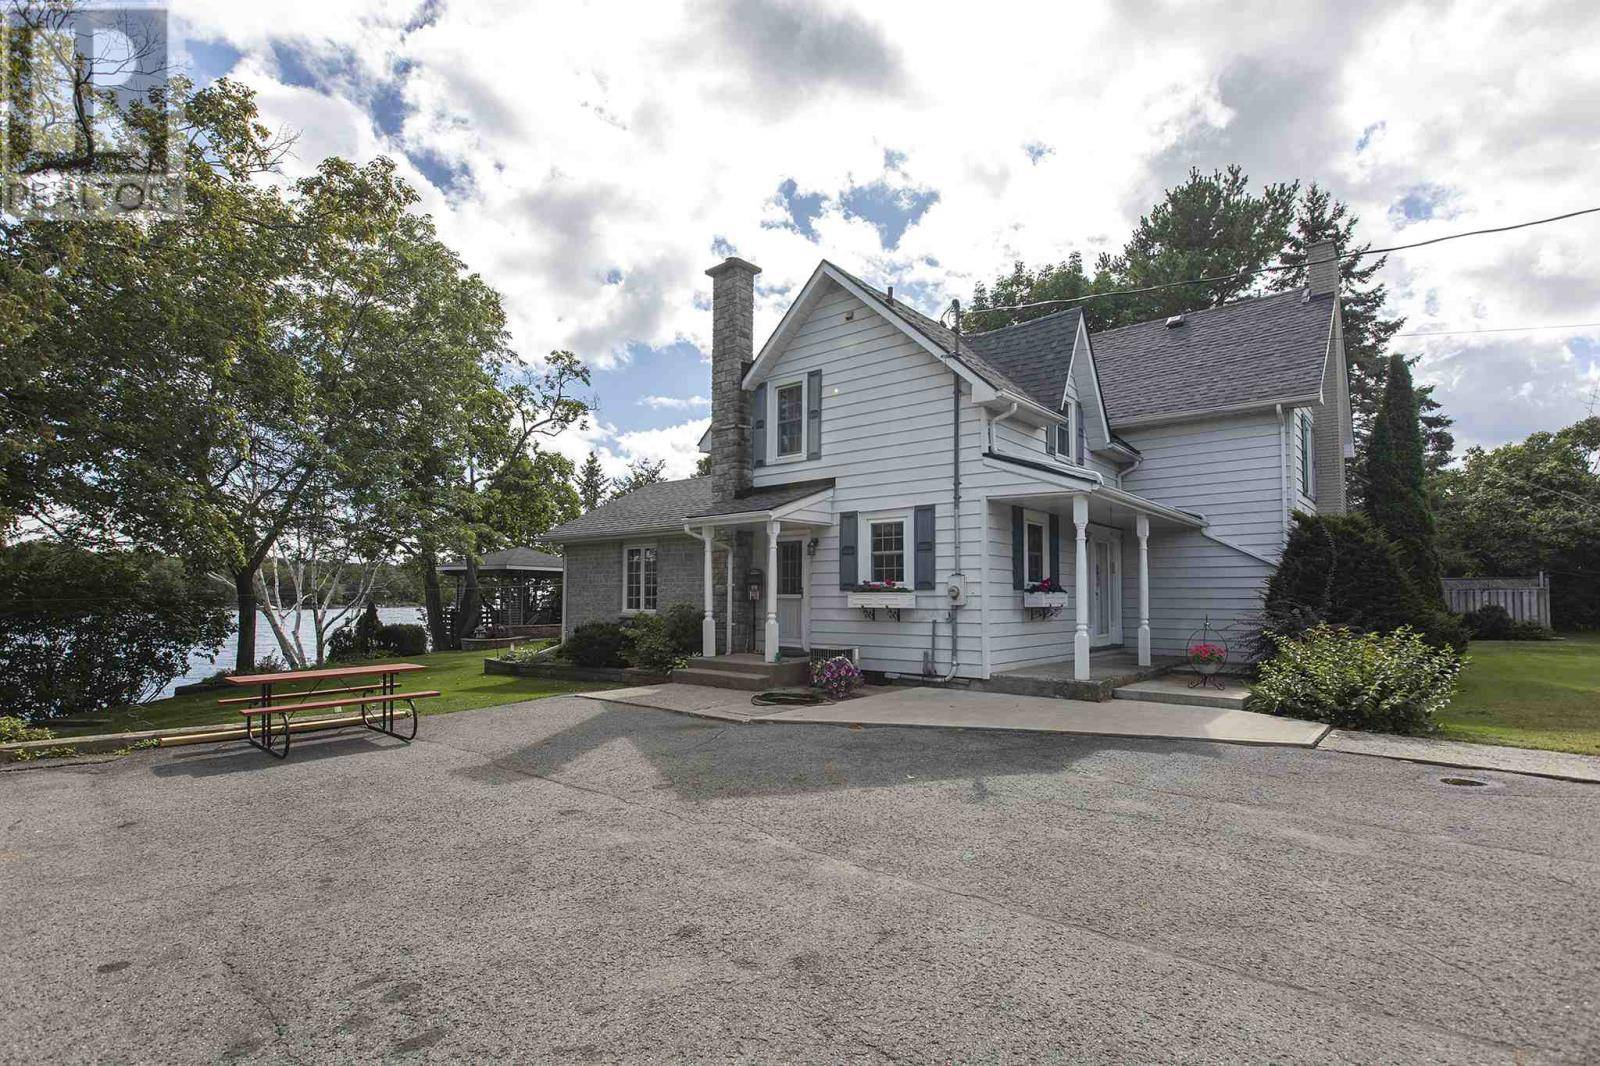 House for sale at 4914 Bath Rd Loyalist Ontario - MLS: K19005860